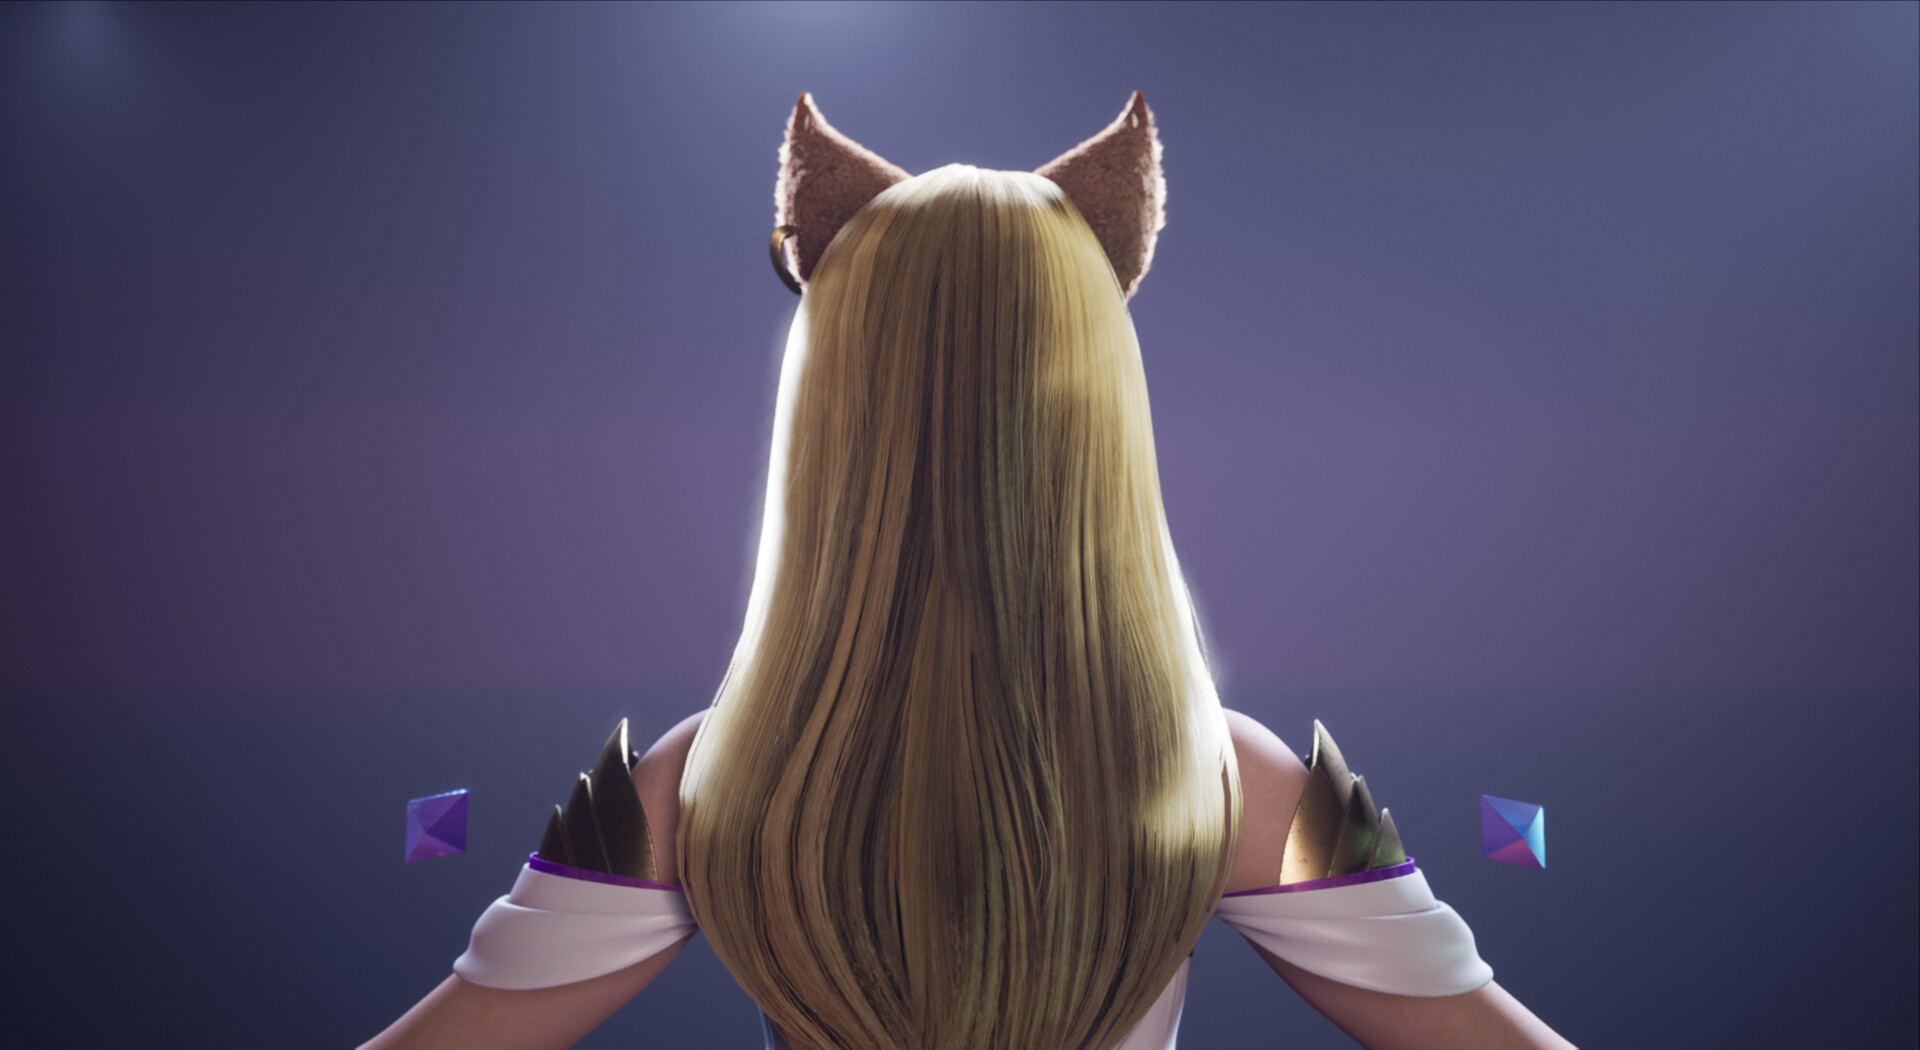 ... and blocking out hair. Ahri's hair took me a few iterations to get right.